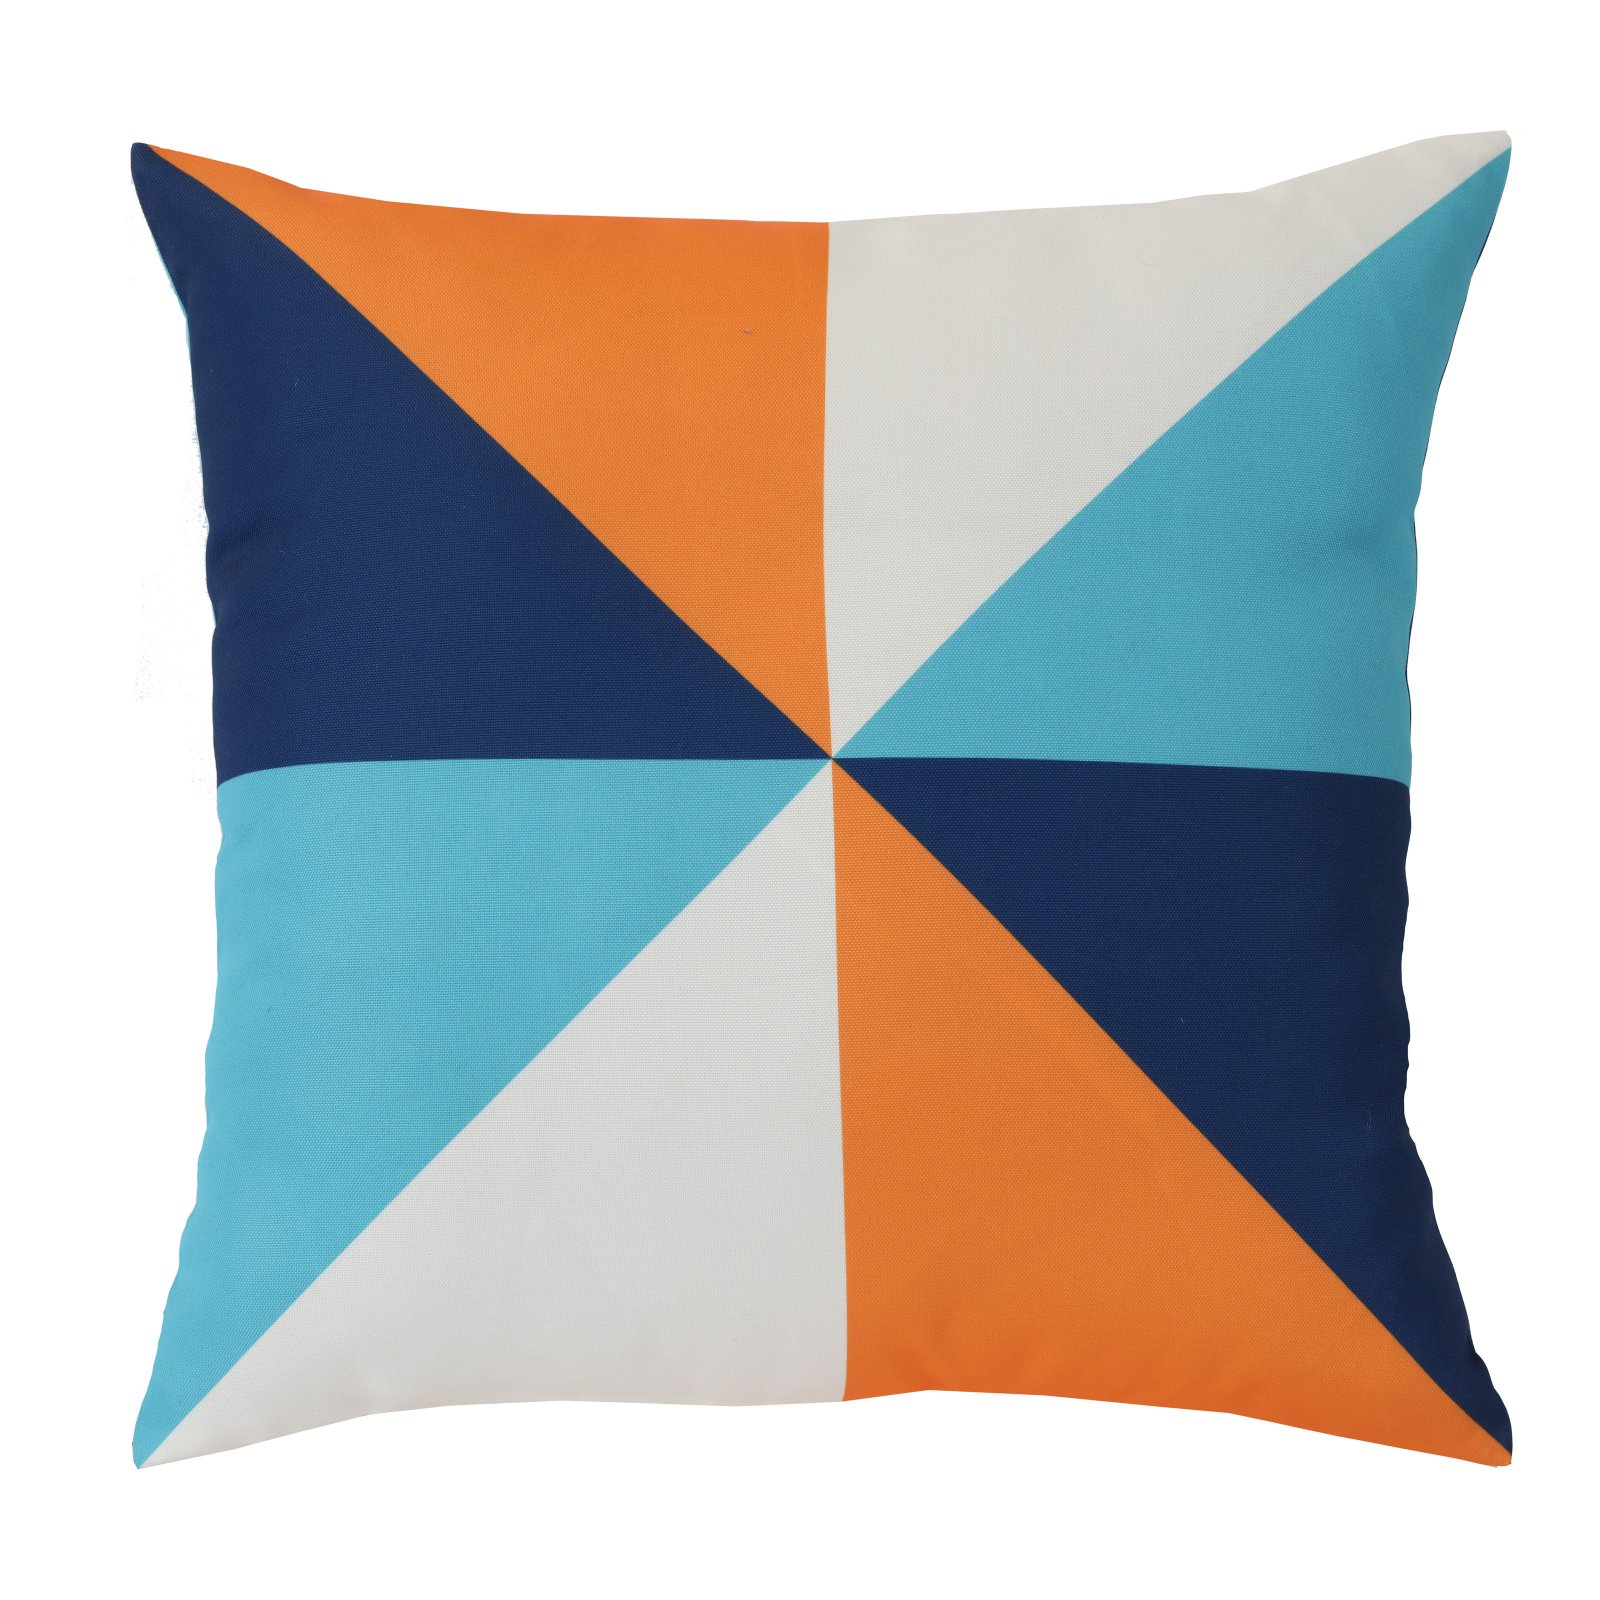 Habitat Beach Ball Outdoor Throw Pillow